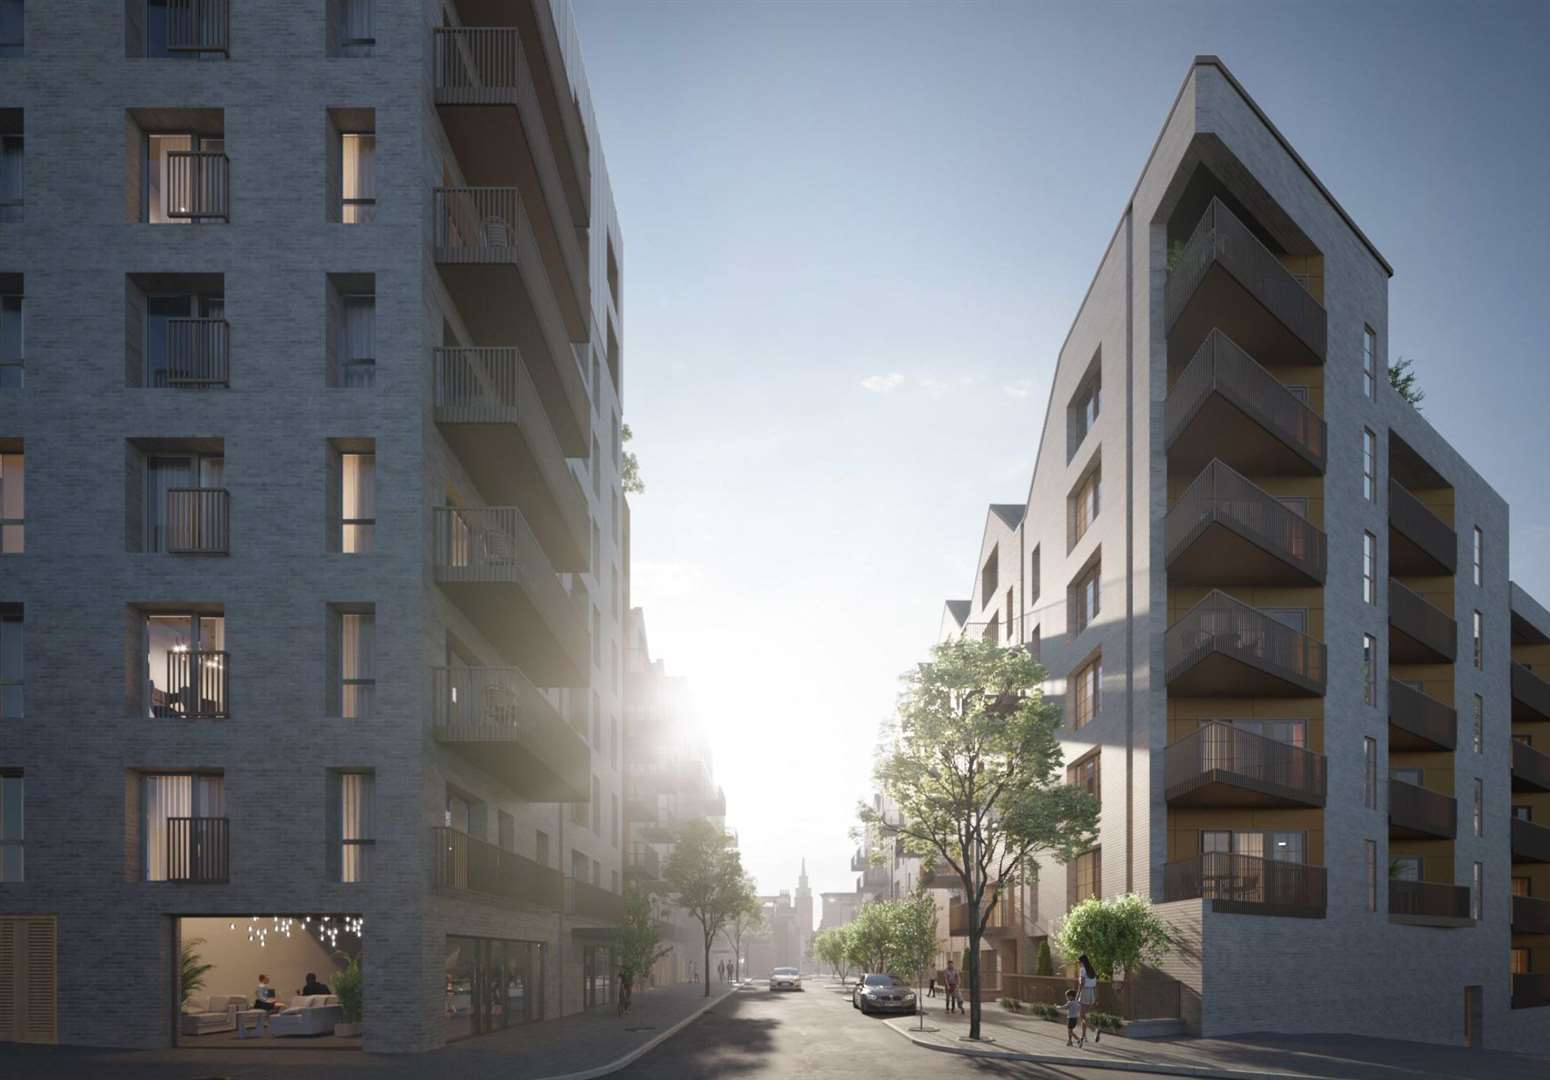 New homes are a key part of regeneration in Gravesend